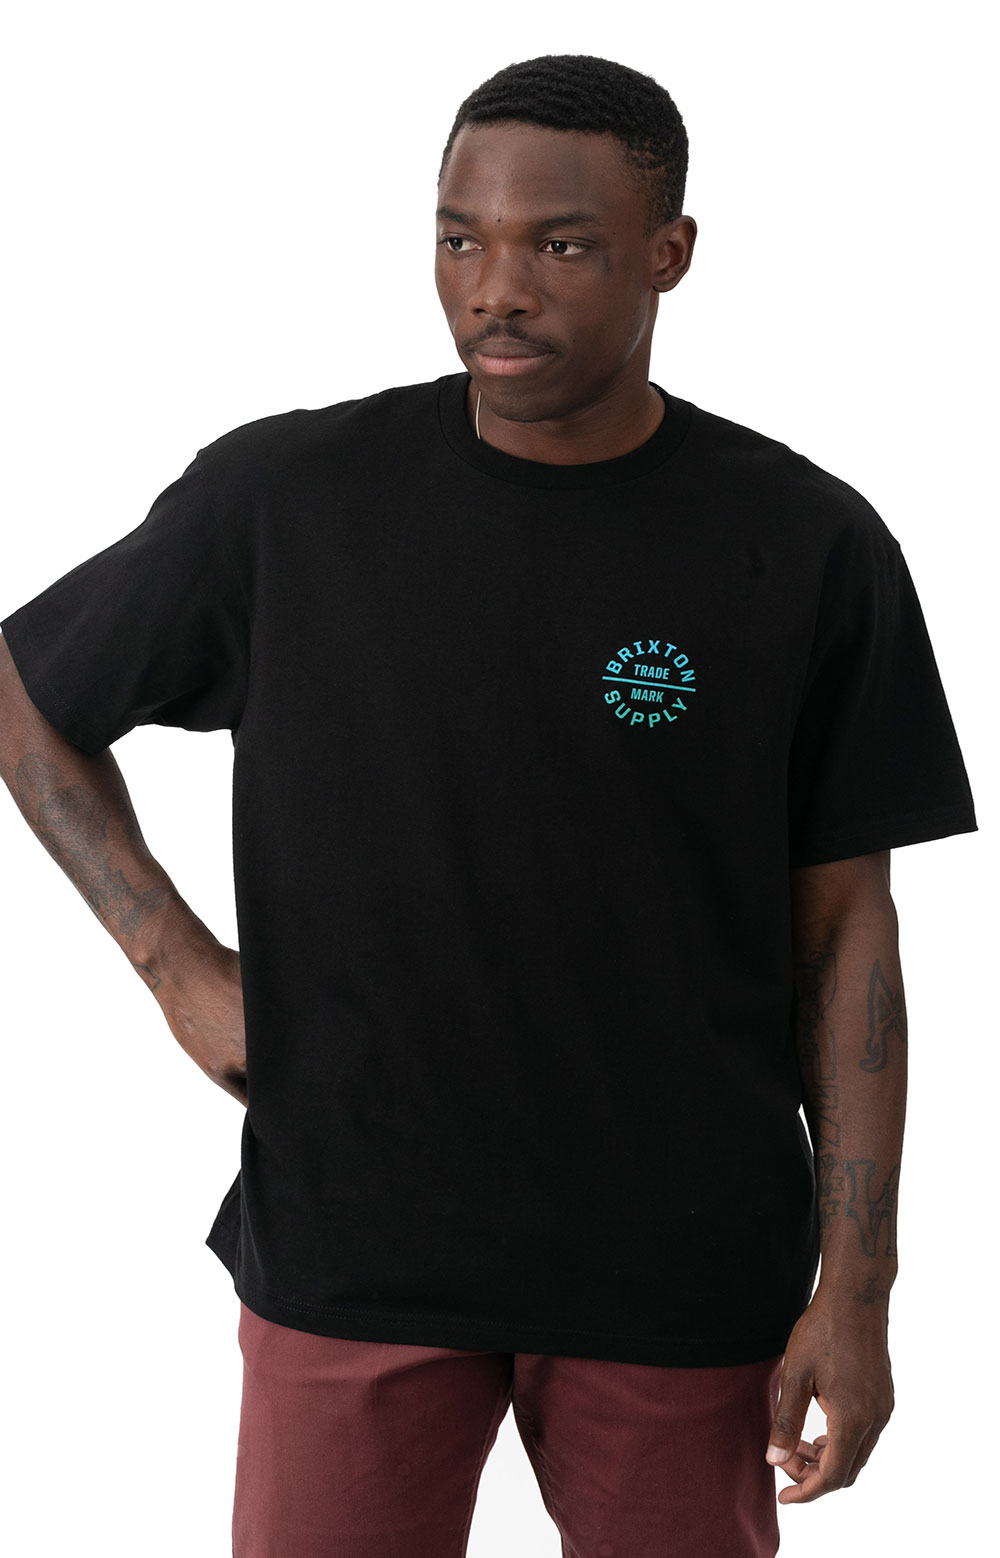 Oath V T-Shirt - Black/Gradient